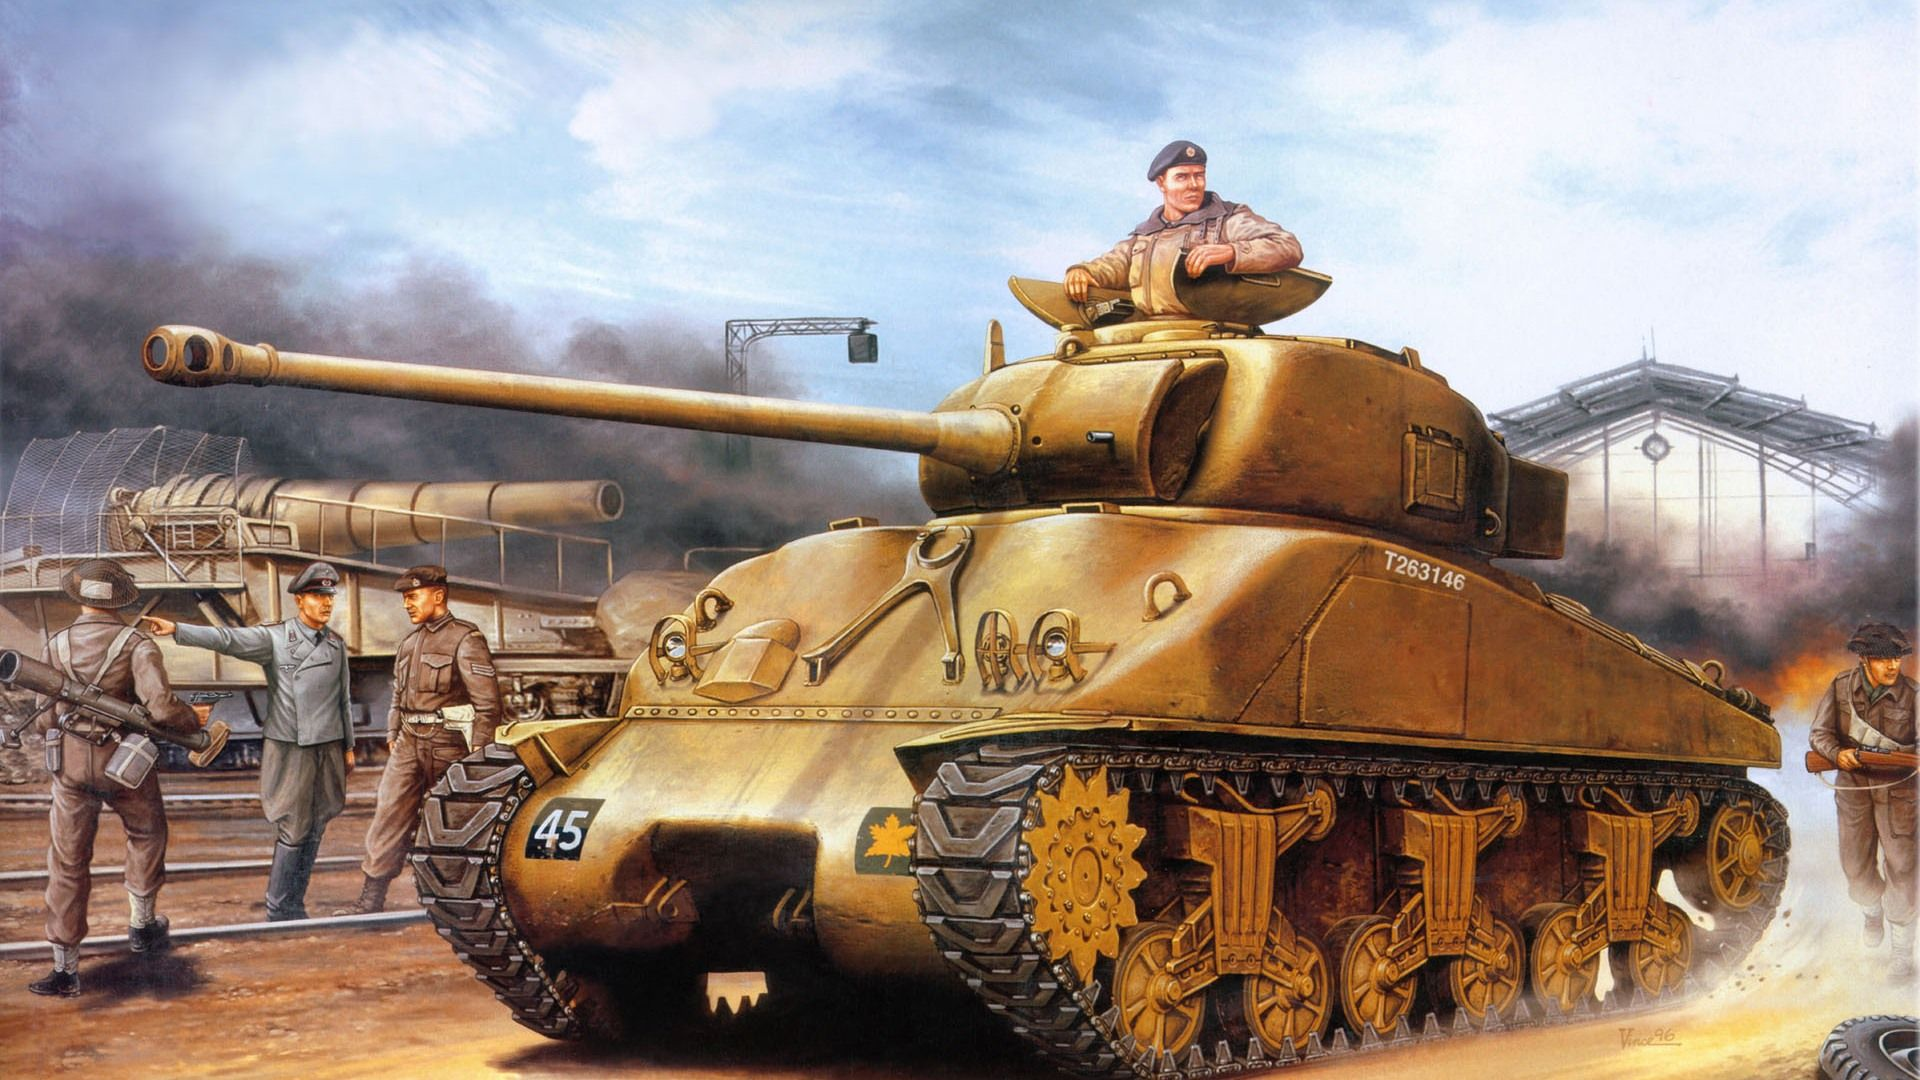 Military tanks, armored HD painting wallpapers #10